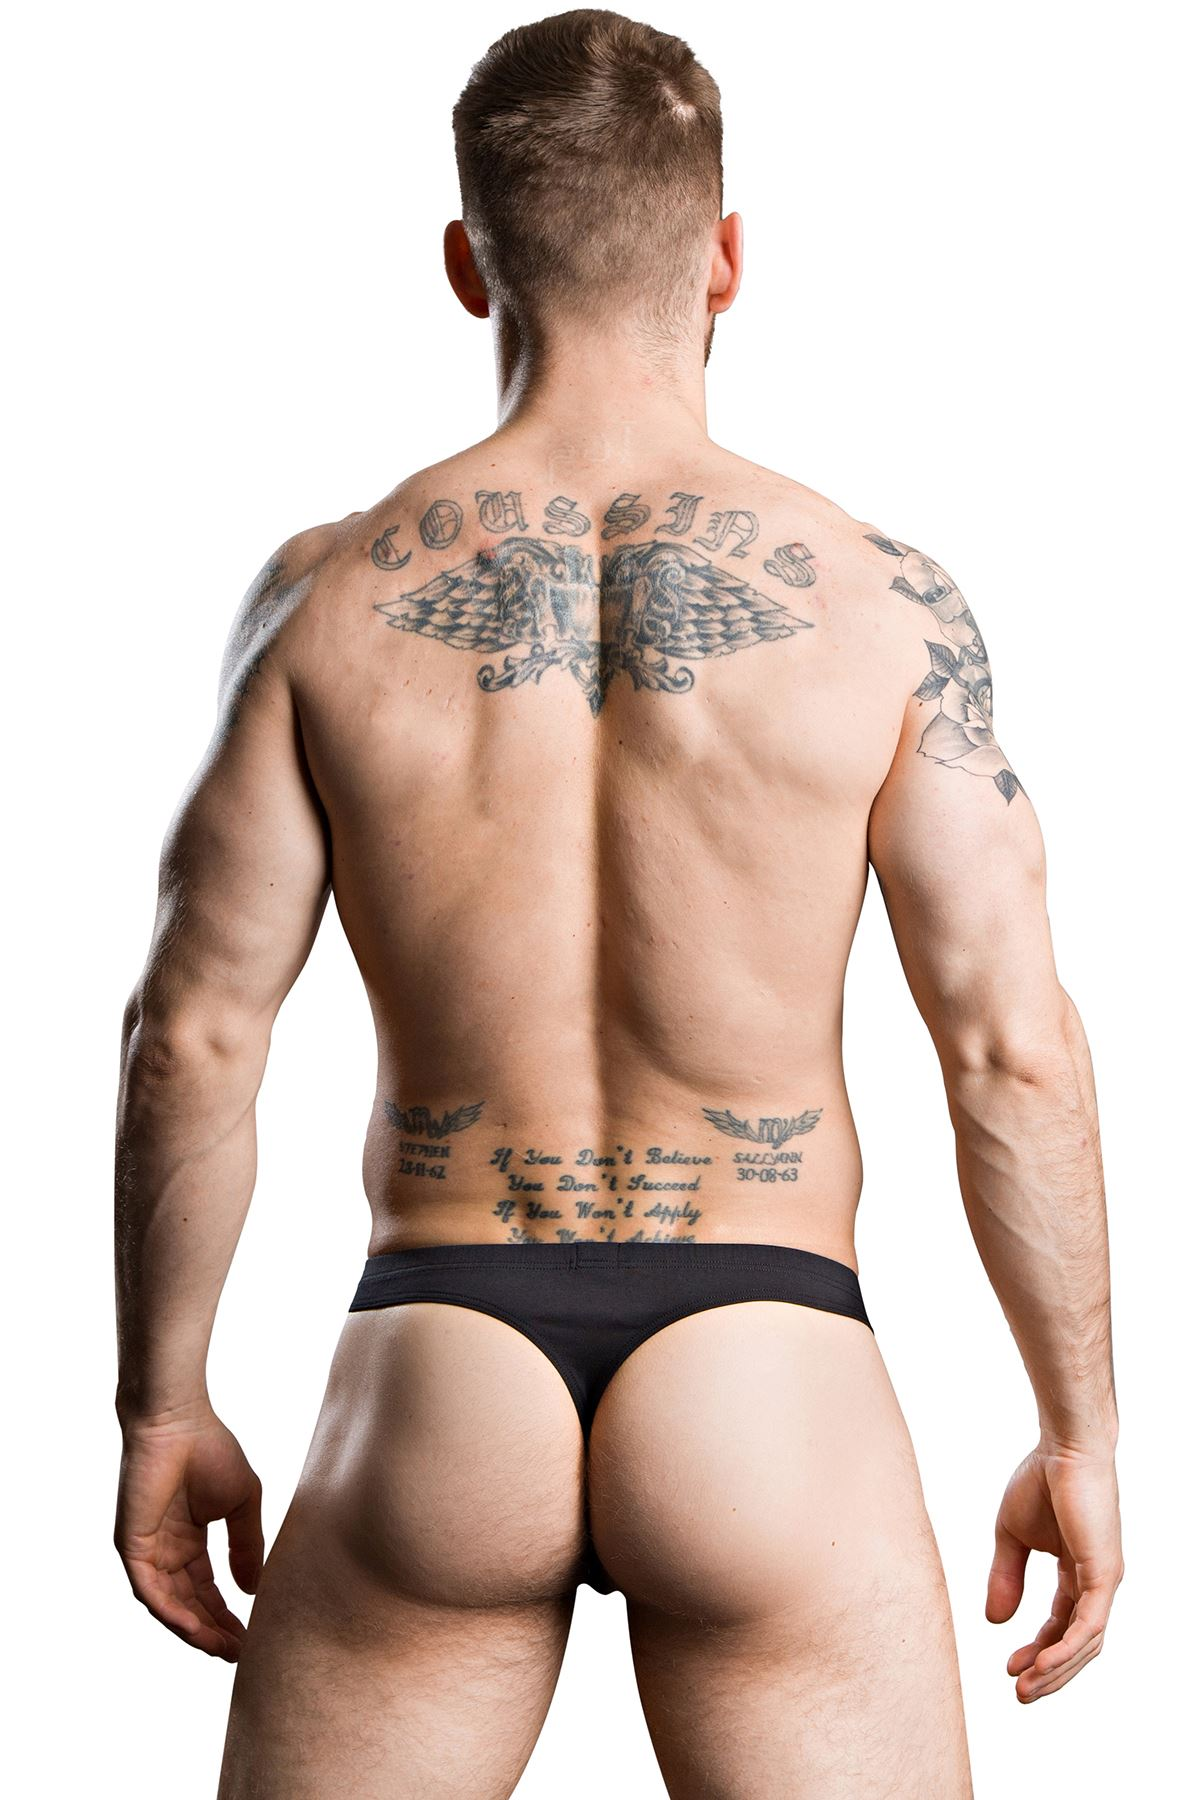 b1b0244814f HOM Men's Classic Cotton G-String Thong Underwear S-2XL Sexy ...